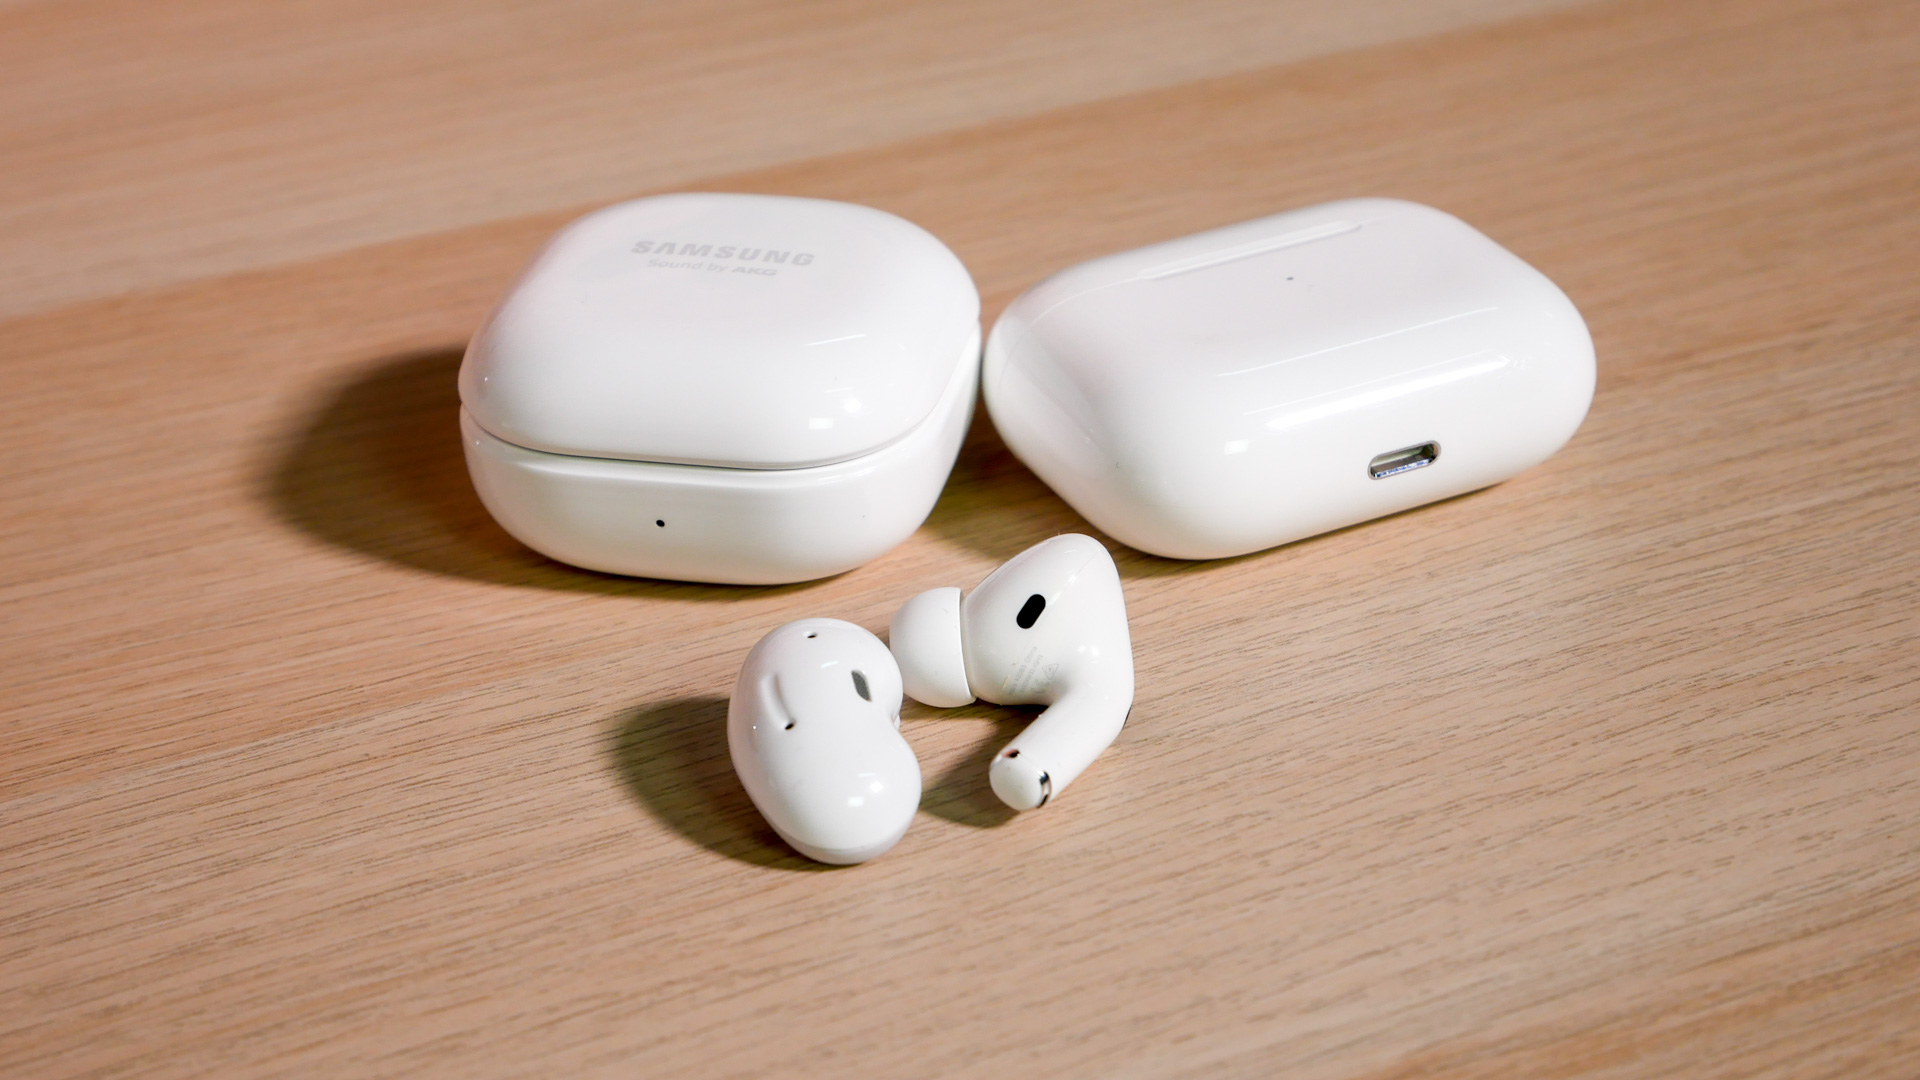 The Samsung Galaxy Buds Live (left) with the AirPods Pro